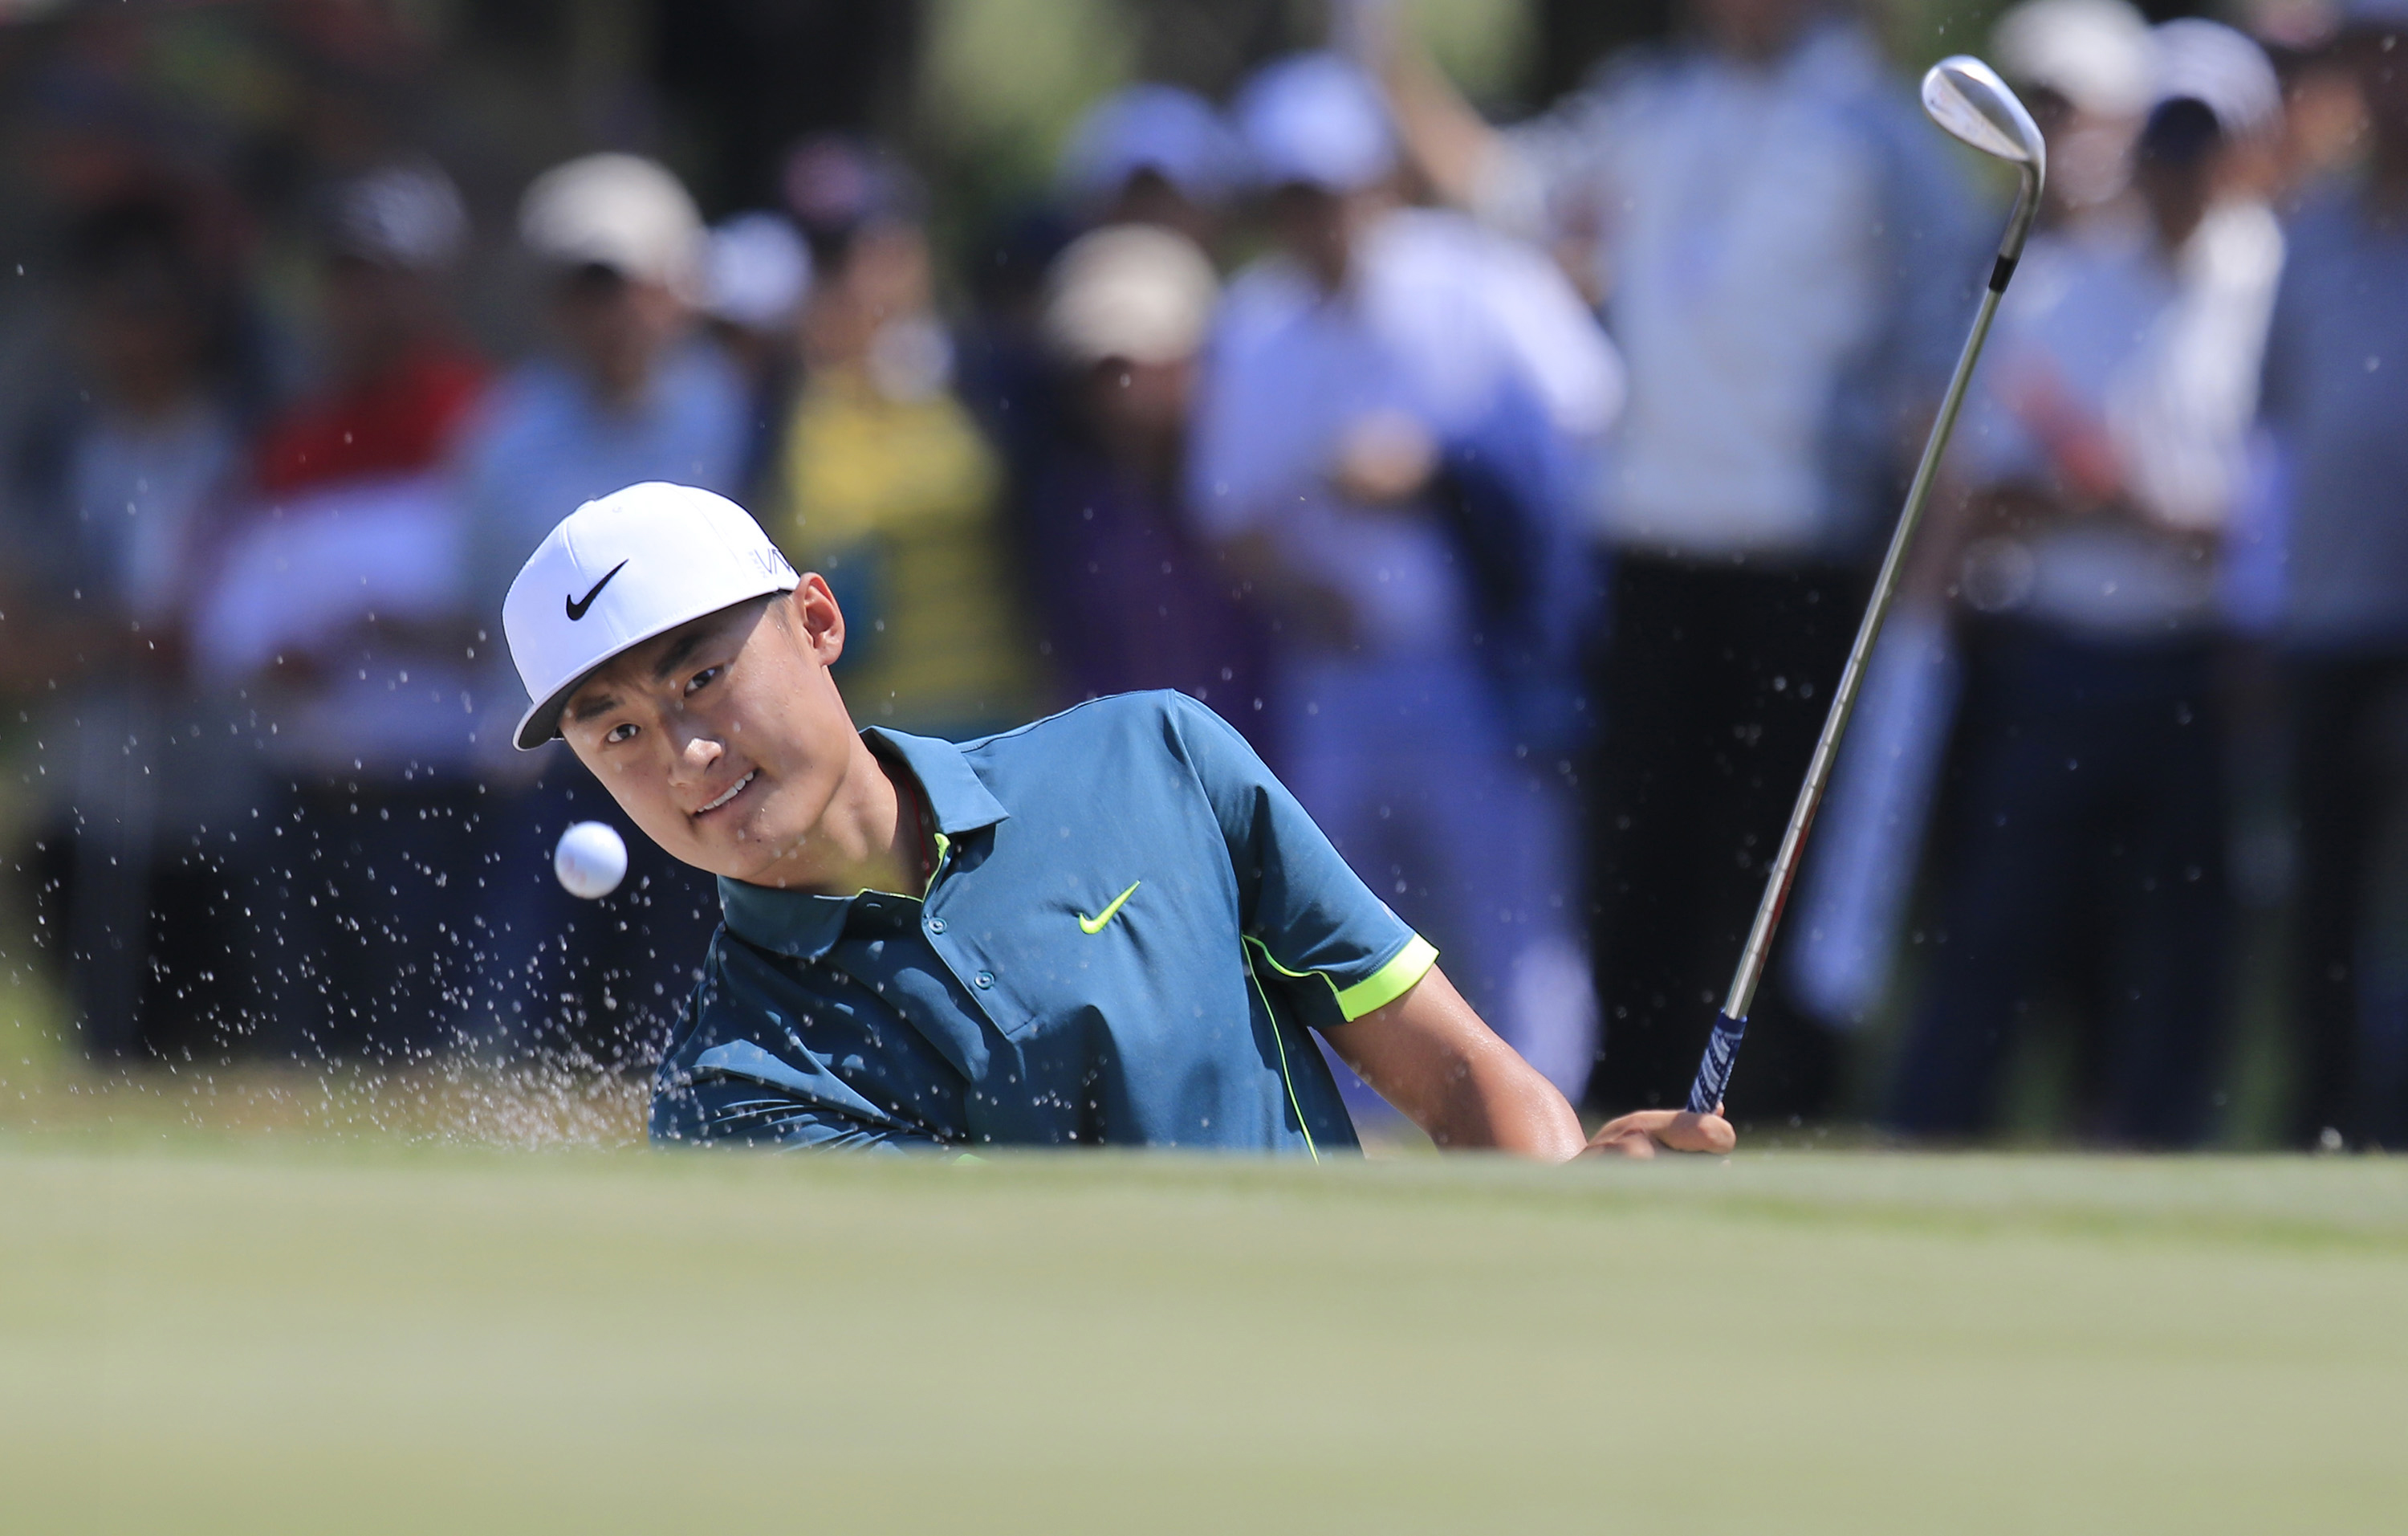 Li Haotong of China hits from a bunker on the 2nd hole during the final round of the Volvo China Open in Shanghai, China, Sunday, April 26, 2015. (AP Photo)